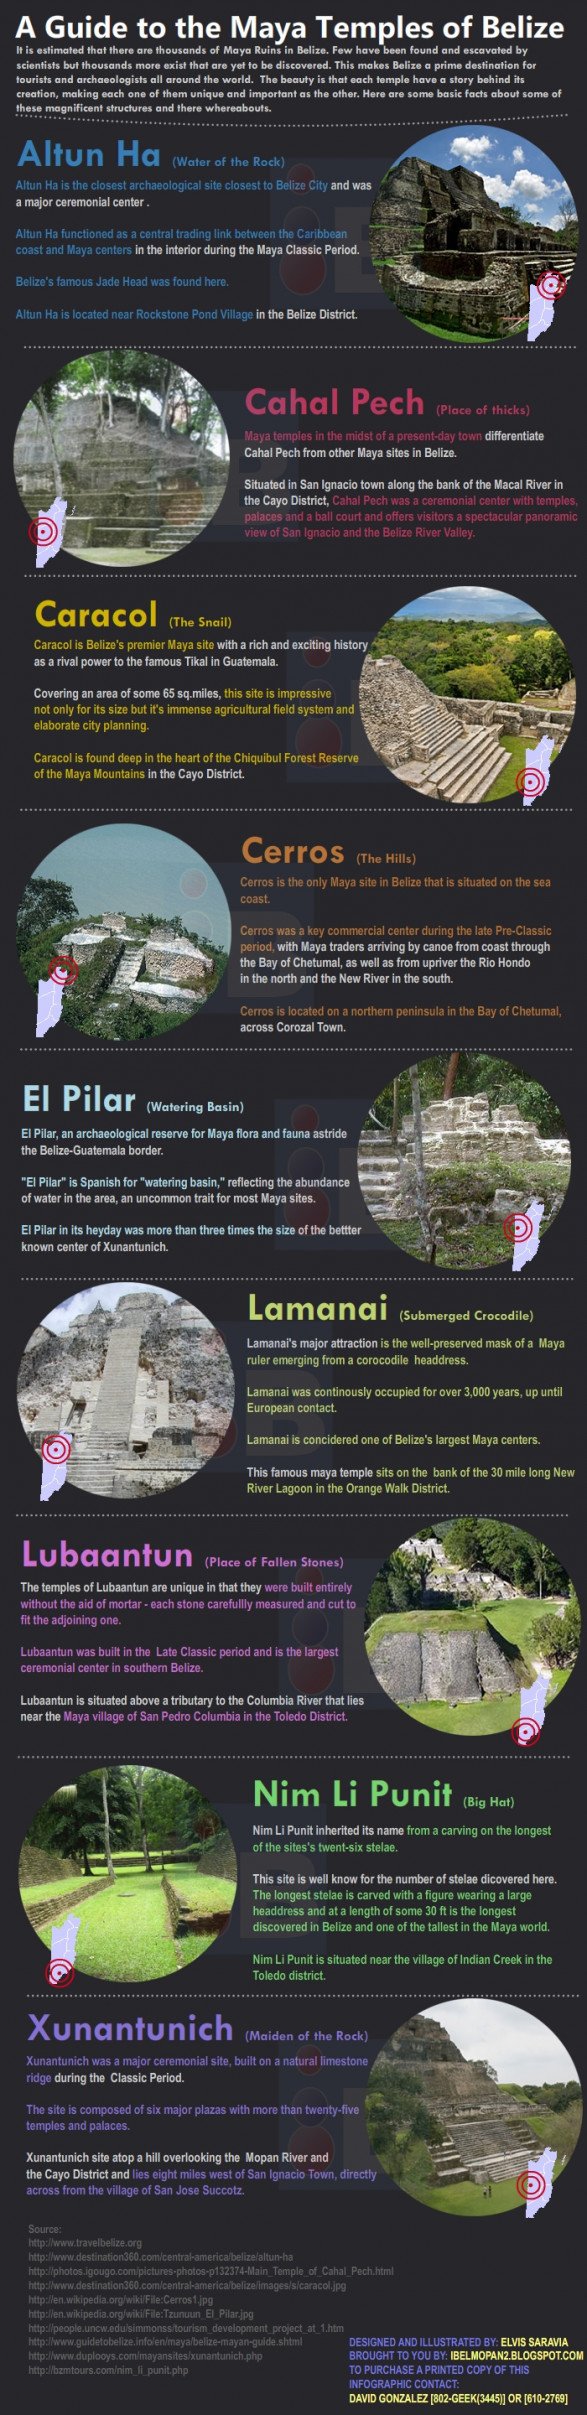 A Guide to the Maya Temples of Belize